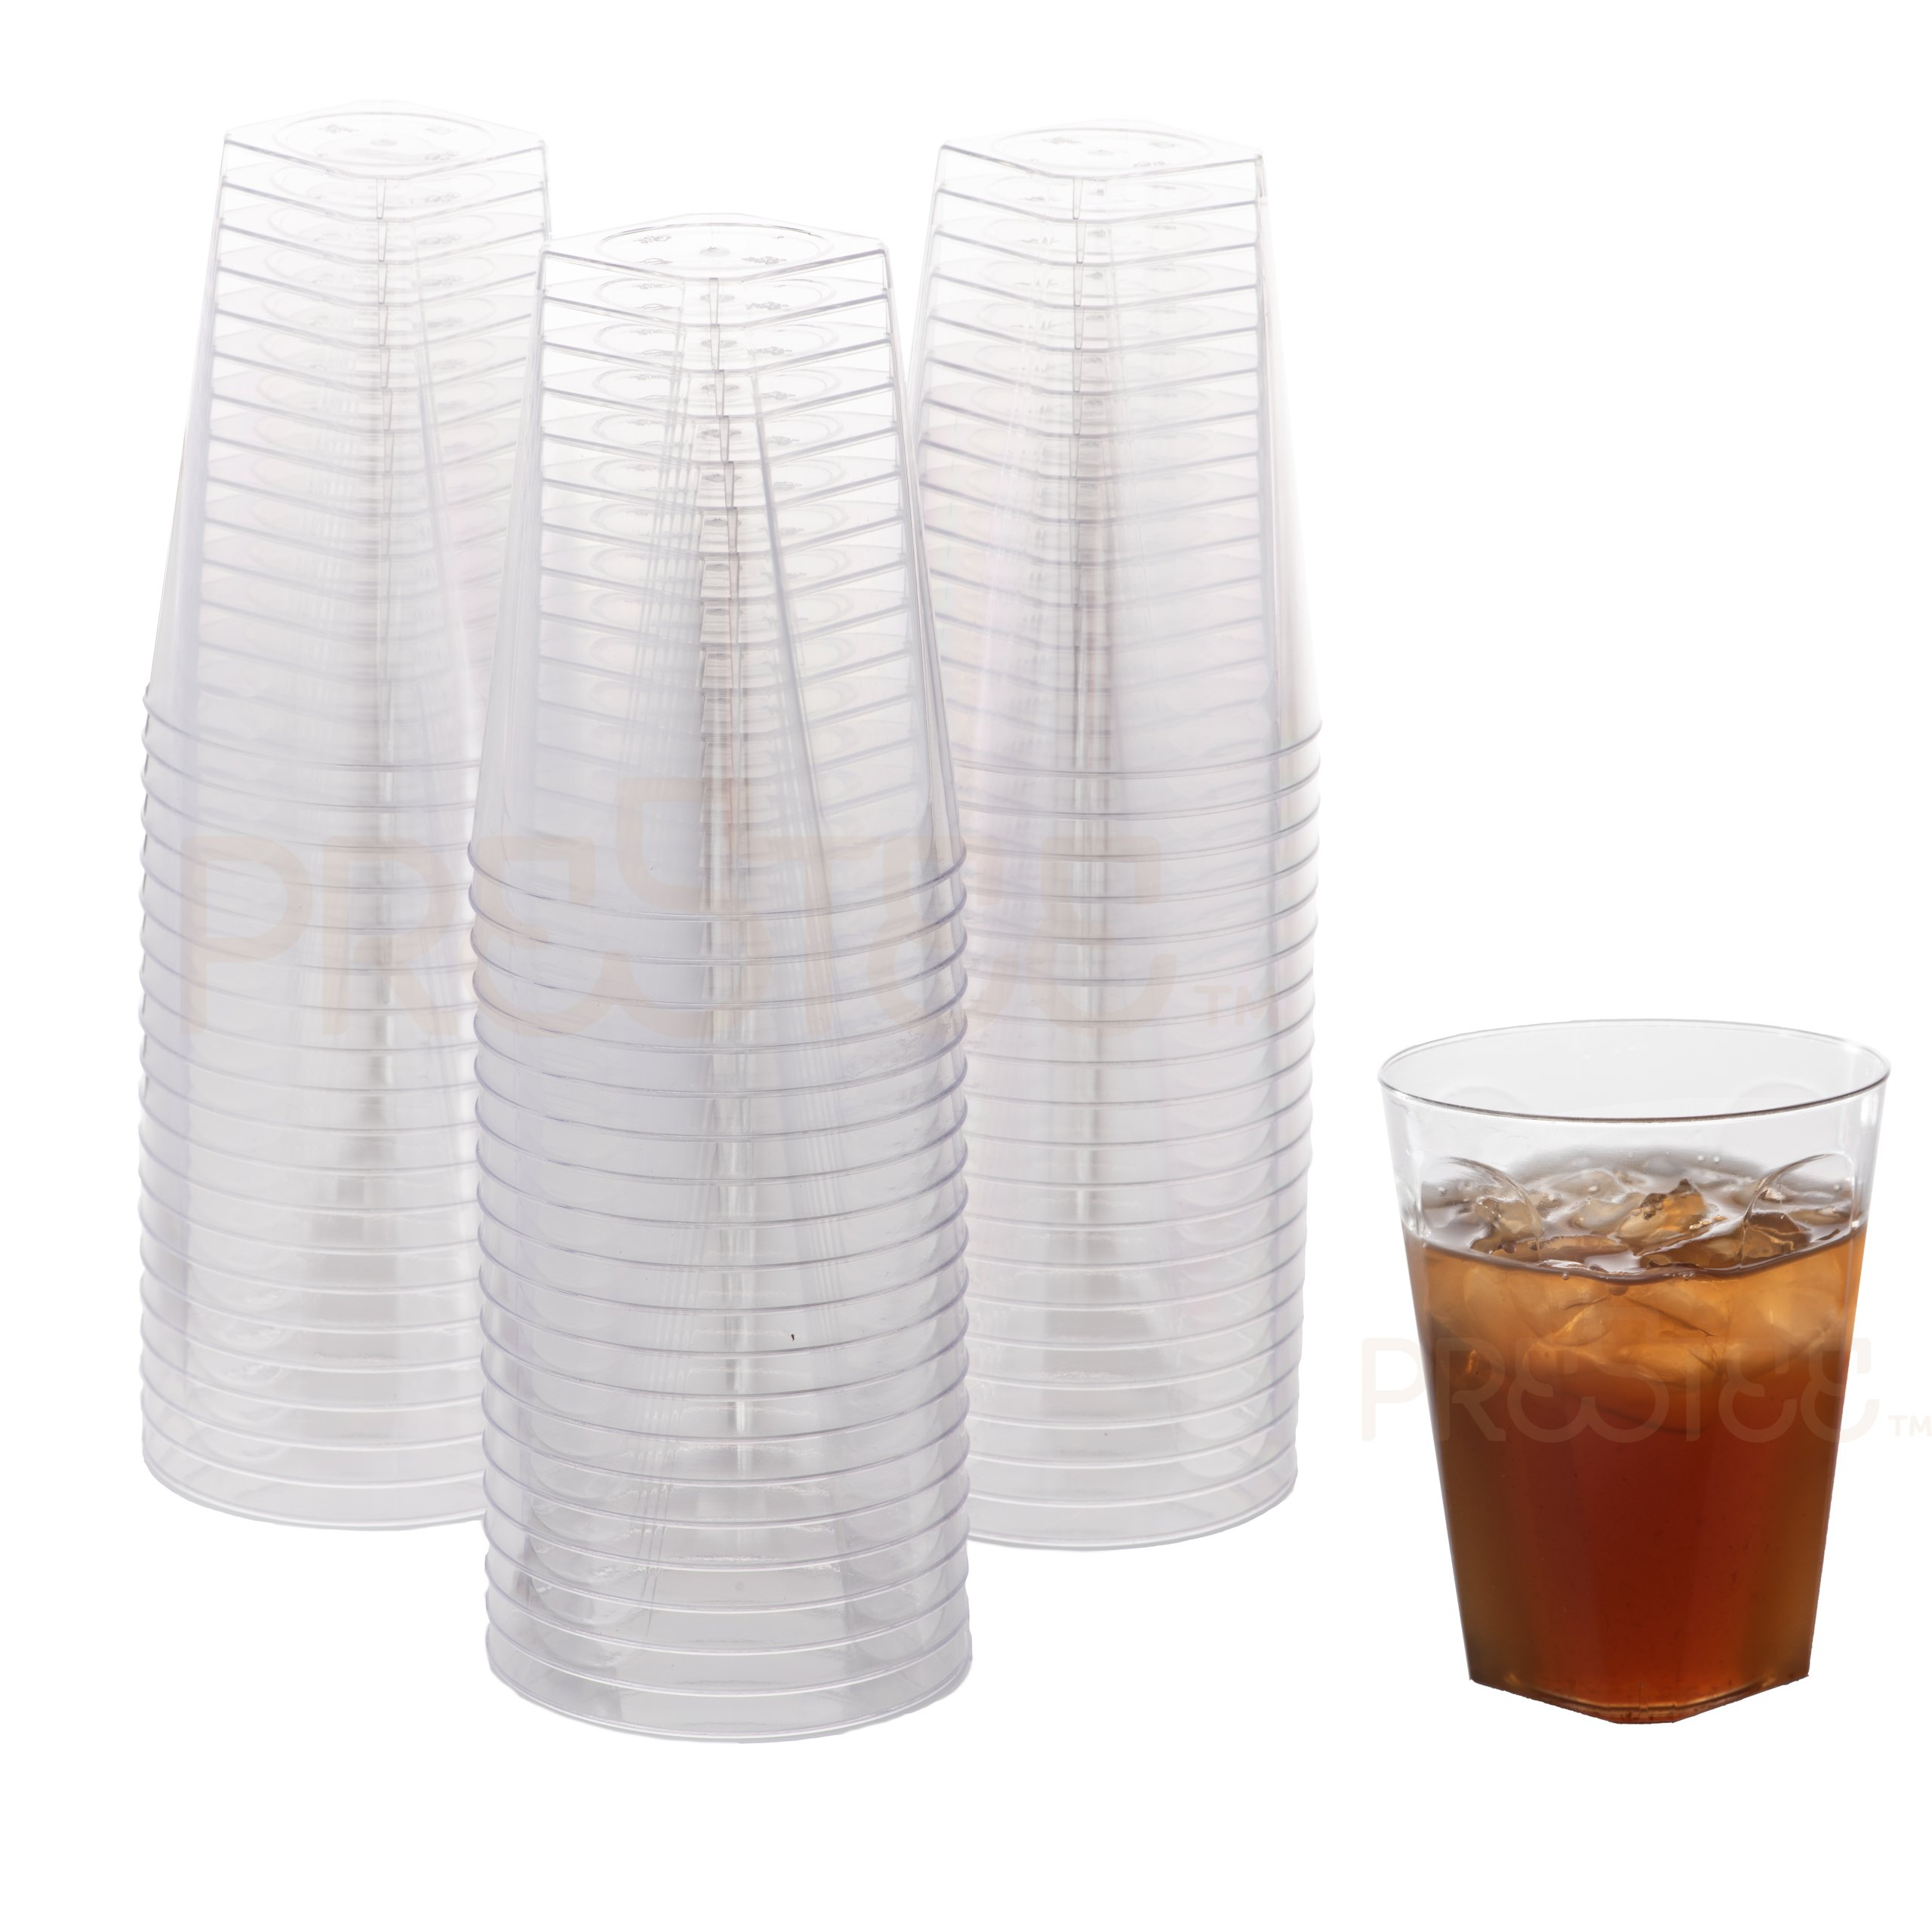 7 oz Clear Plastic Cups | Square Disposable Cups | Old Fashioned Tumblers | 80 Pack | Beverage Party Cups | Hard Plastic Drinking Cups | Ideal for Wine, Cocktails & Punch [Drinket]